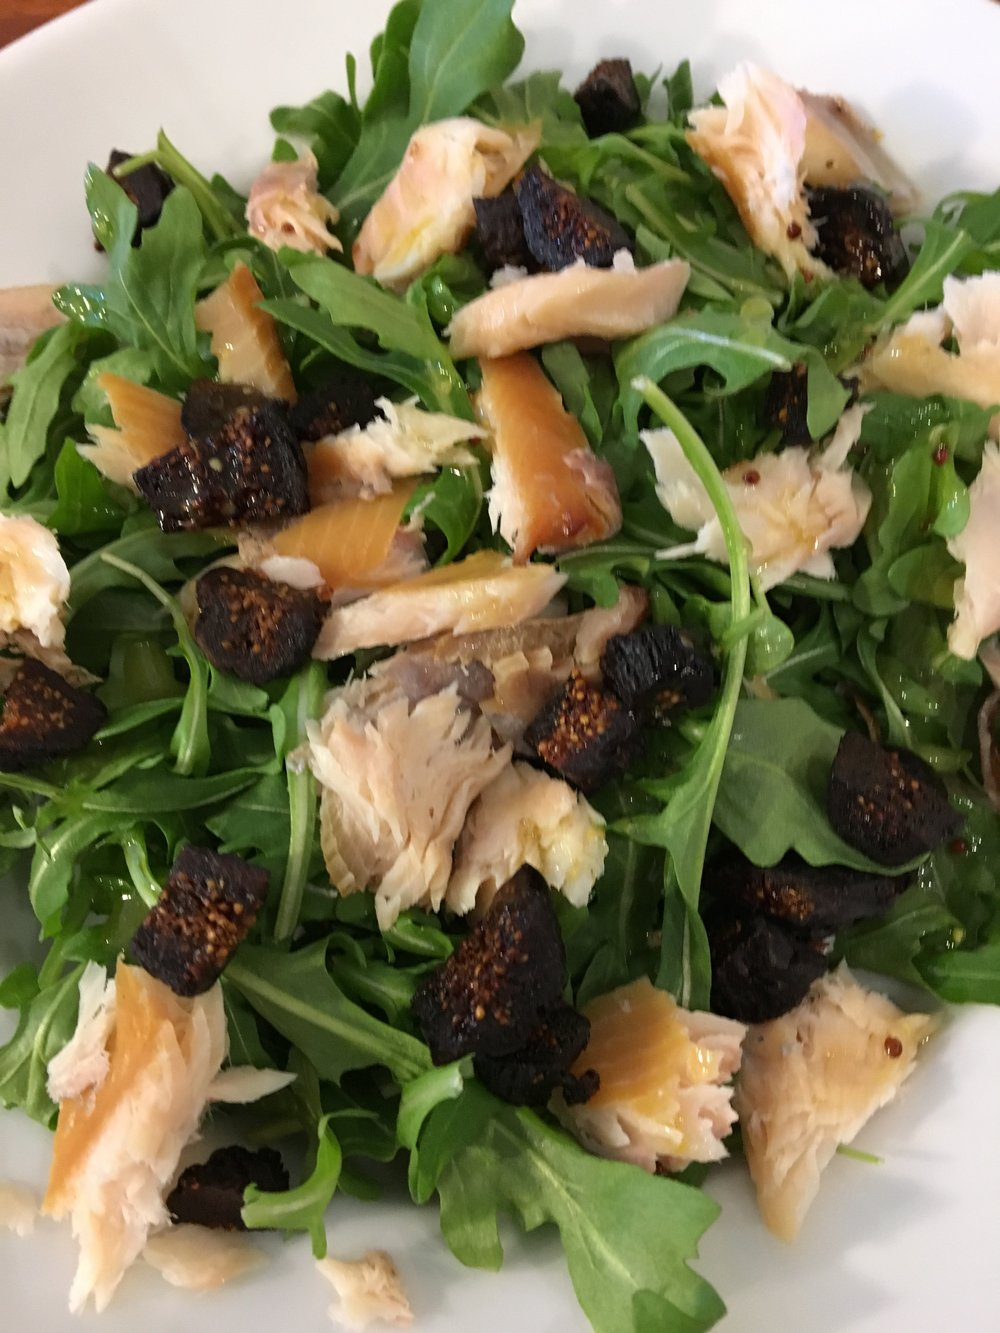 Smoked Trout and Figs with Arugula Bowl